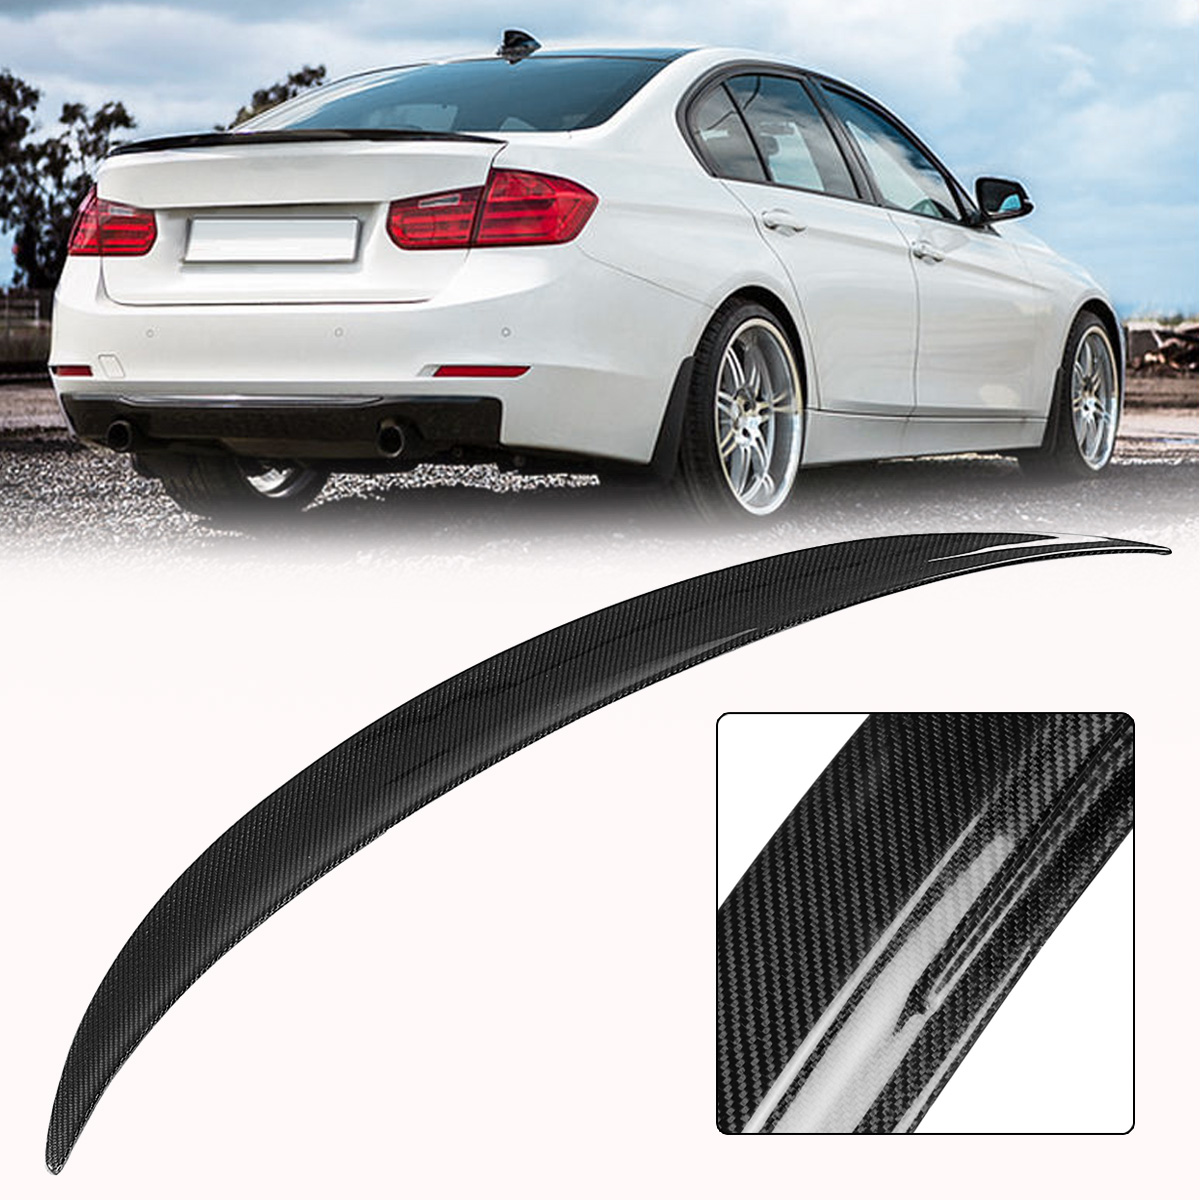 High quality Carbon Fiber Gloss Black Rear Trunk Spoiler Wings Trunk Lip For 12-Up For BMW F30 3-Series 4Dr Performance Style for 12 16 bmw 3 series f30 4dr trunk spoiler oem painted match a83 glacier silver